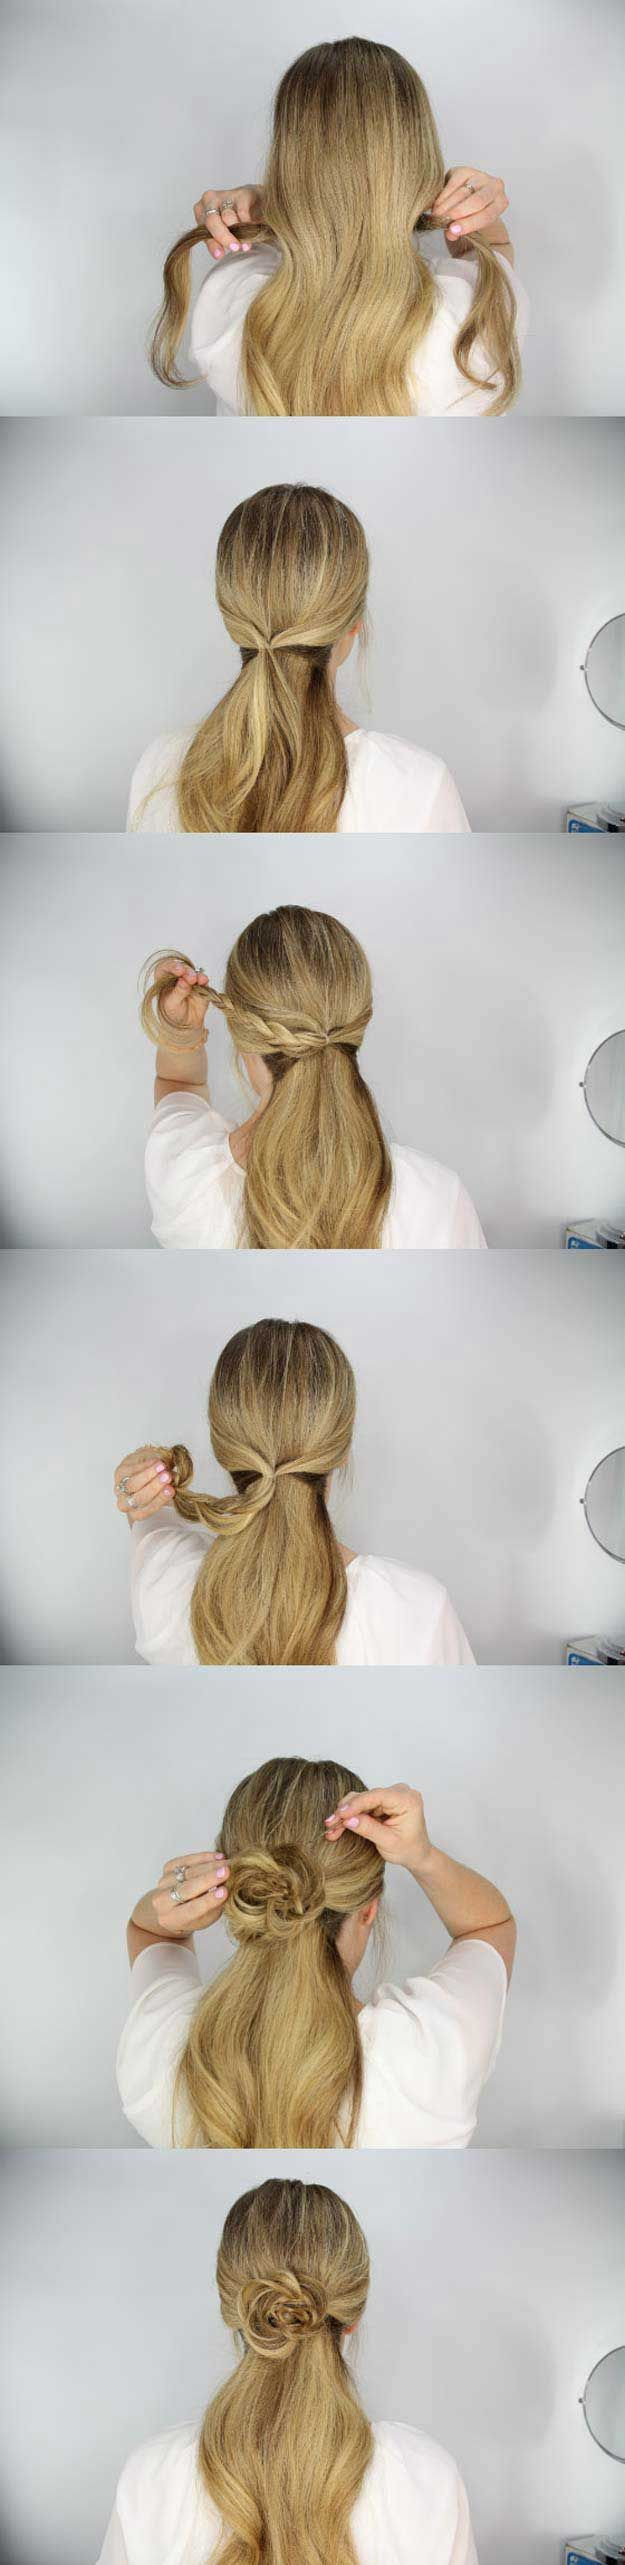 Amazing Half Up-Half Down Hairstyles For Long Hair - The Rosette Embellished Pon...